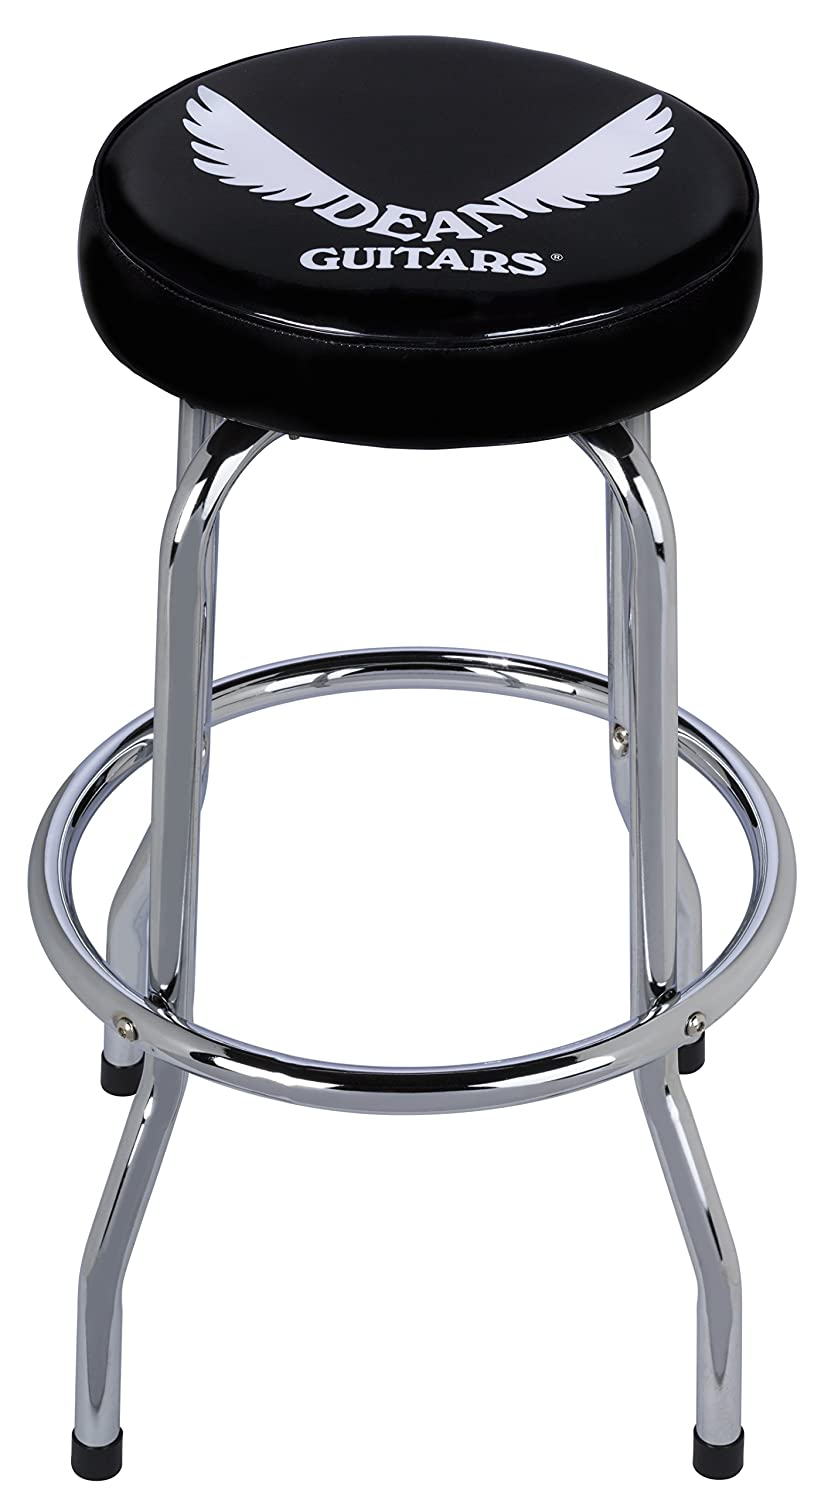 Dean Bar Stool with Dean Logo BSTOOL